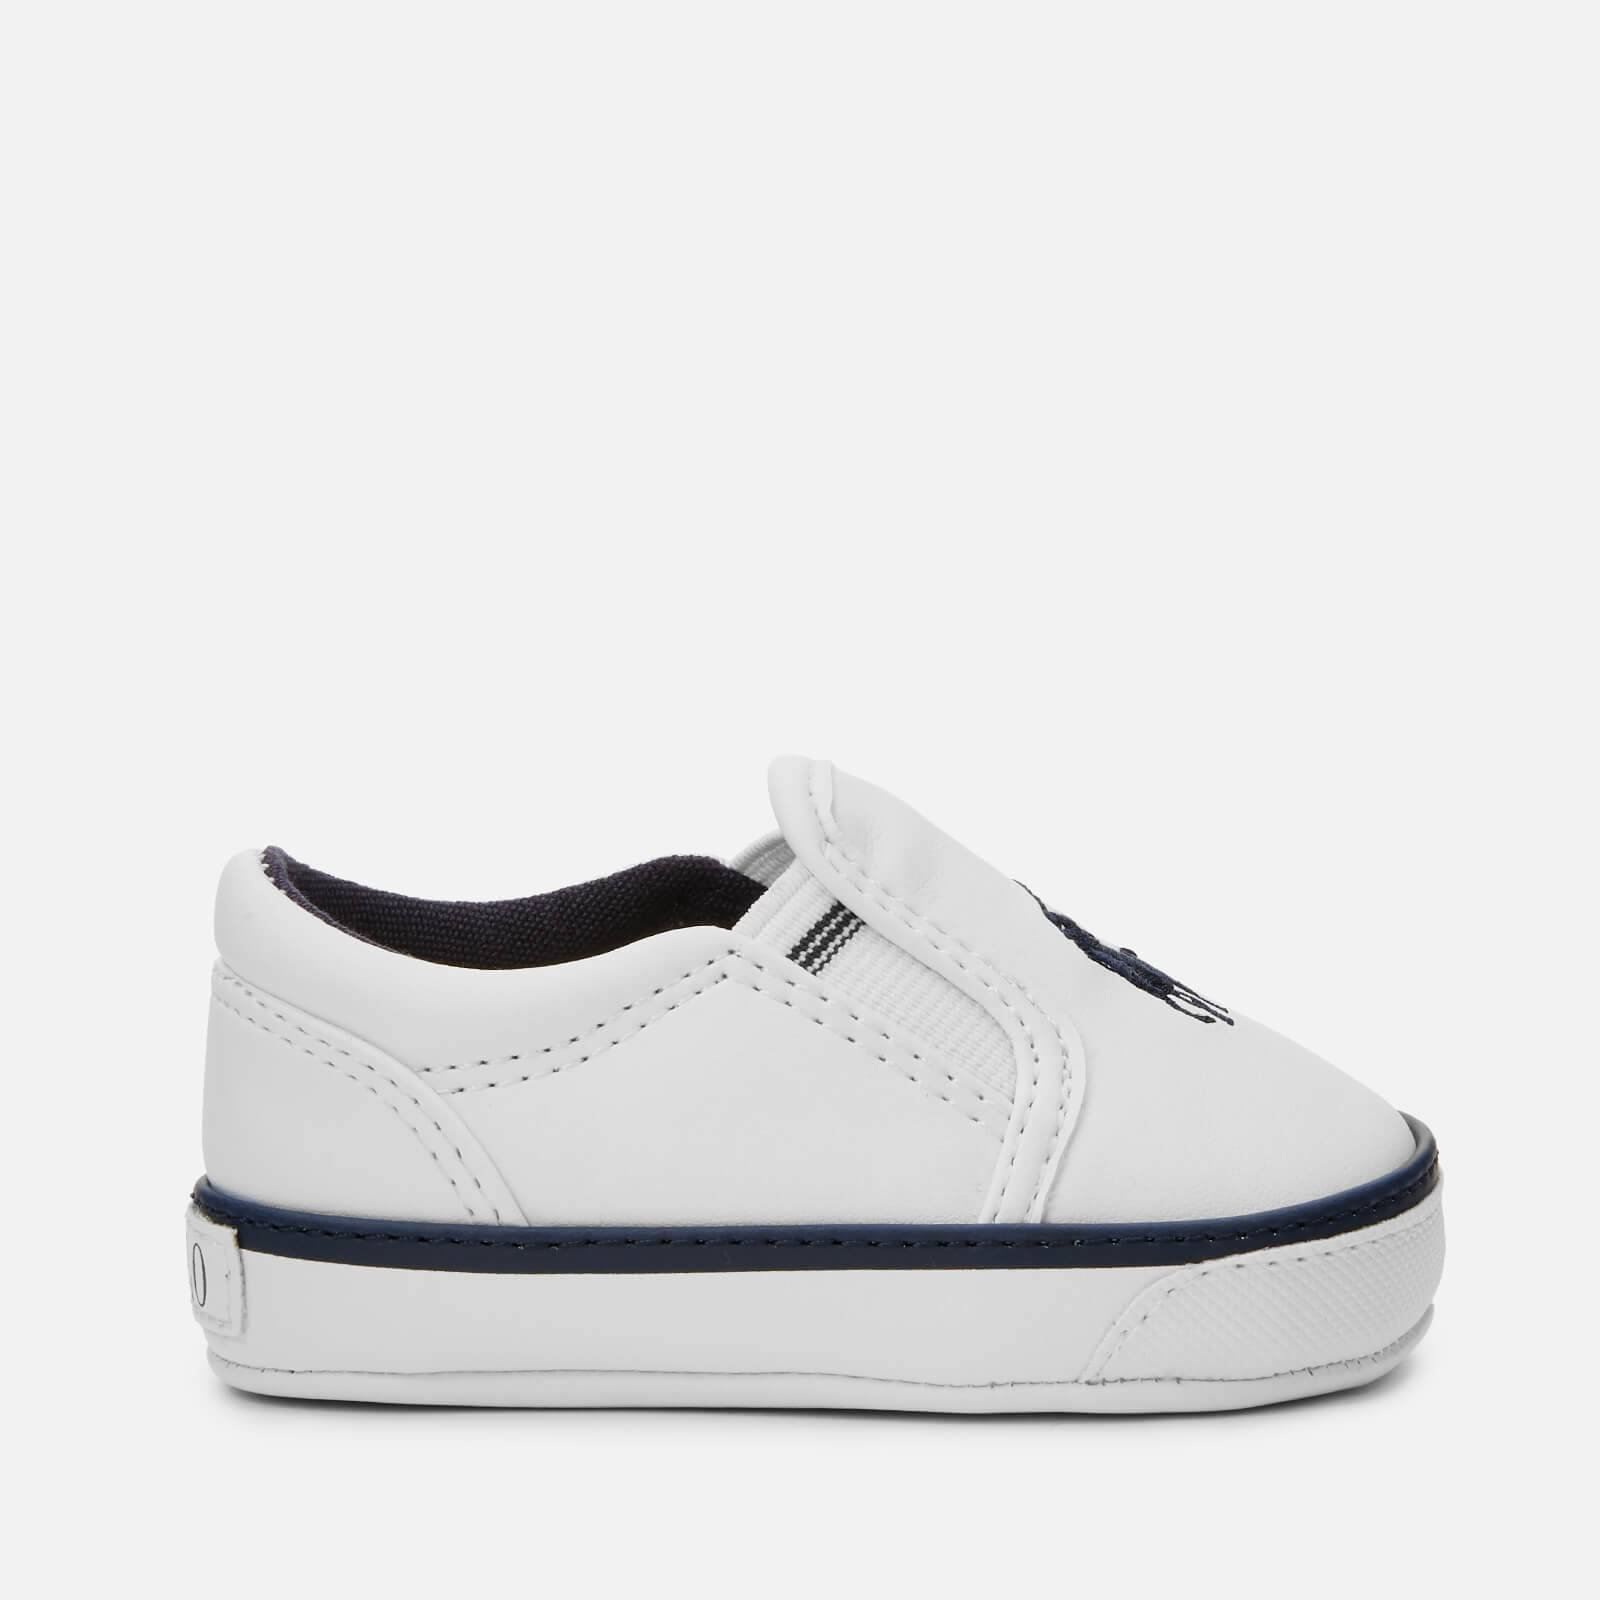 Ralph Lauren Polo Ralph Lauren Baby's Bal Harbour II Polo Player Slip On Trainers - White/Navy - UK 3.5 Baby/EU 19 - White